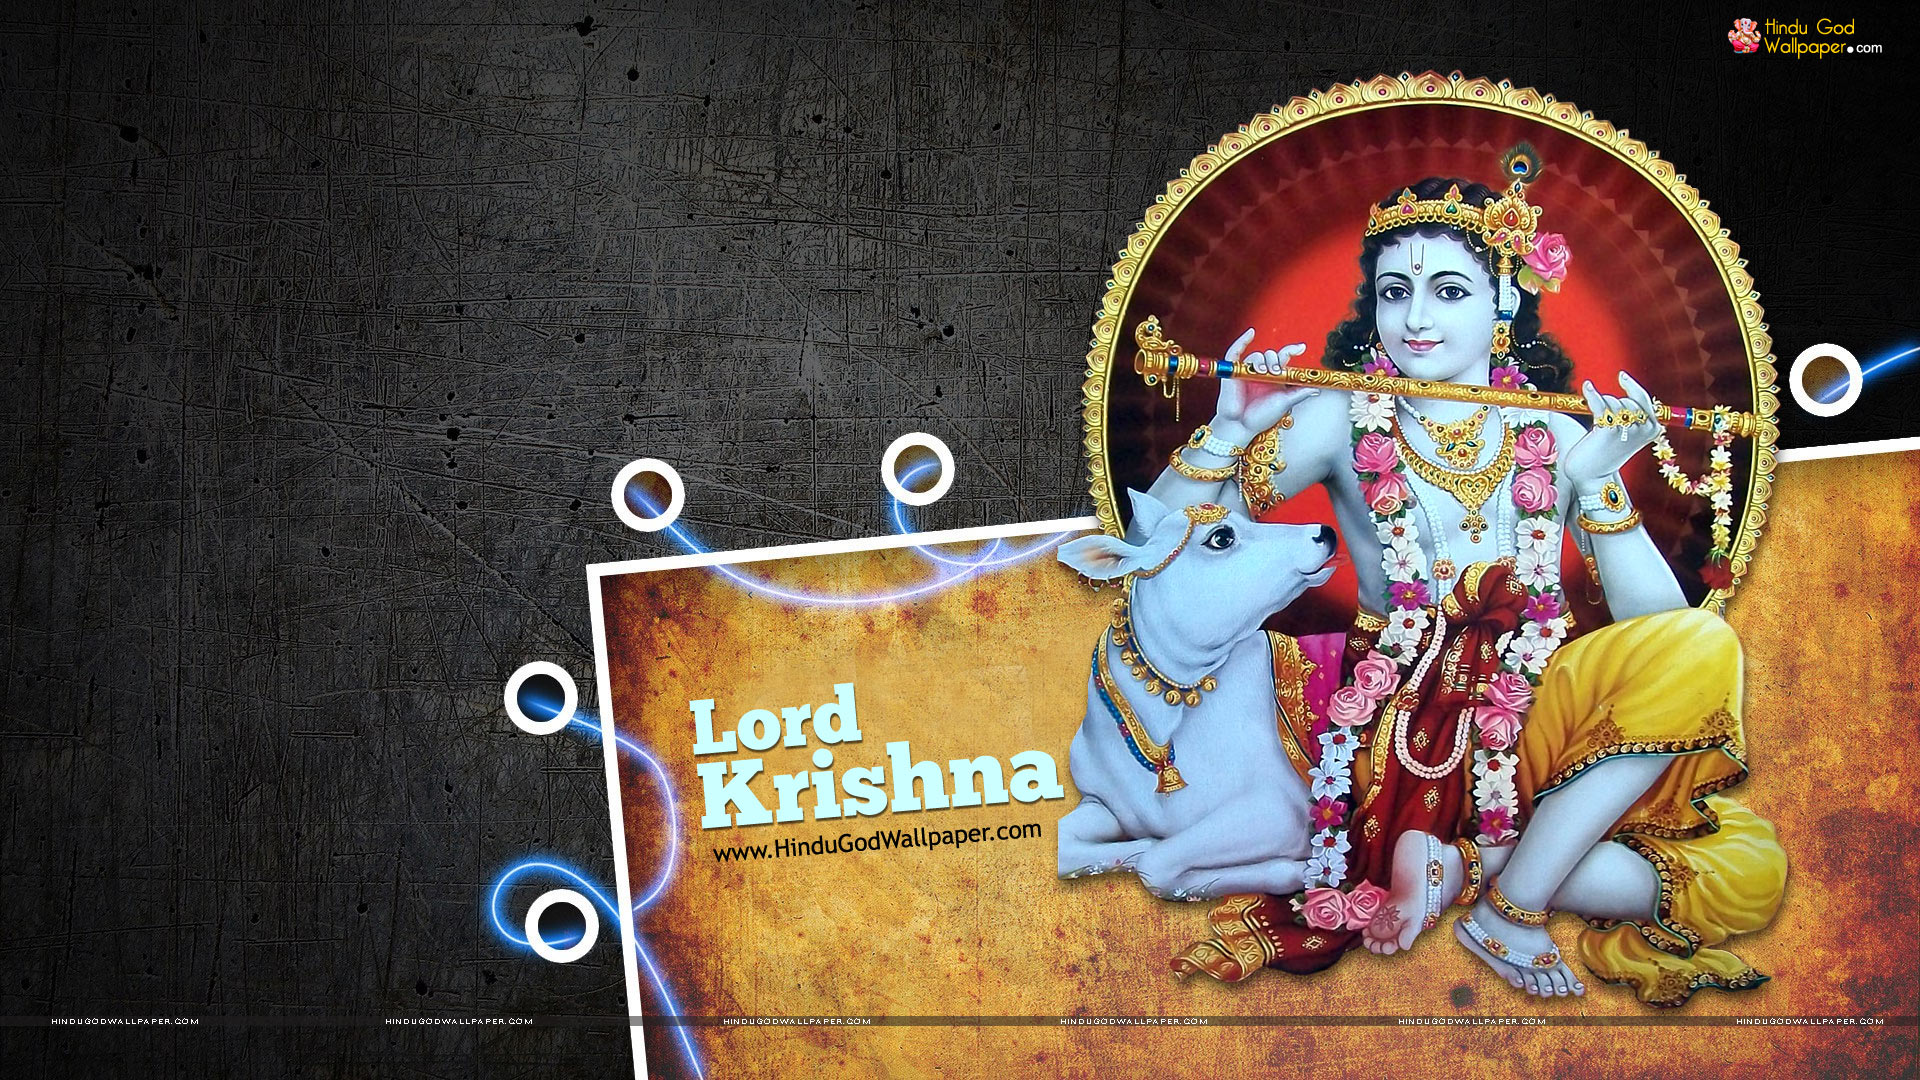 Lord Krishna Wallpaper 1080p Hd Full Size Download